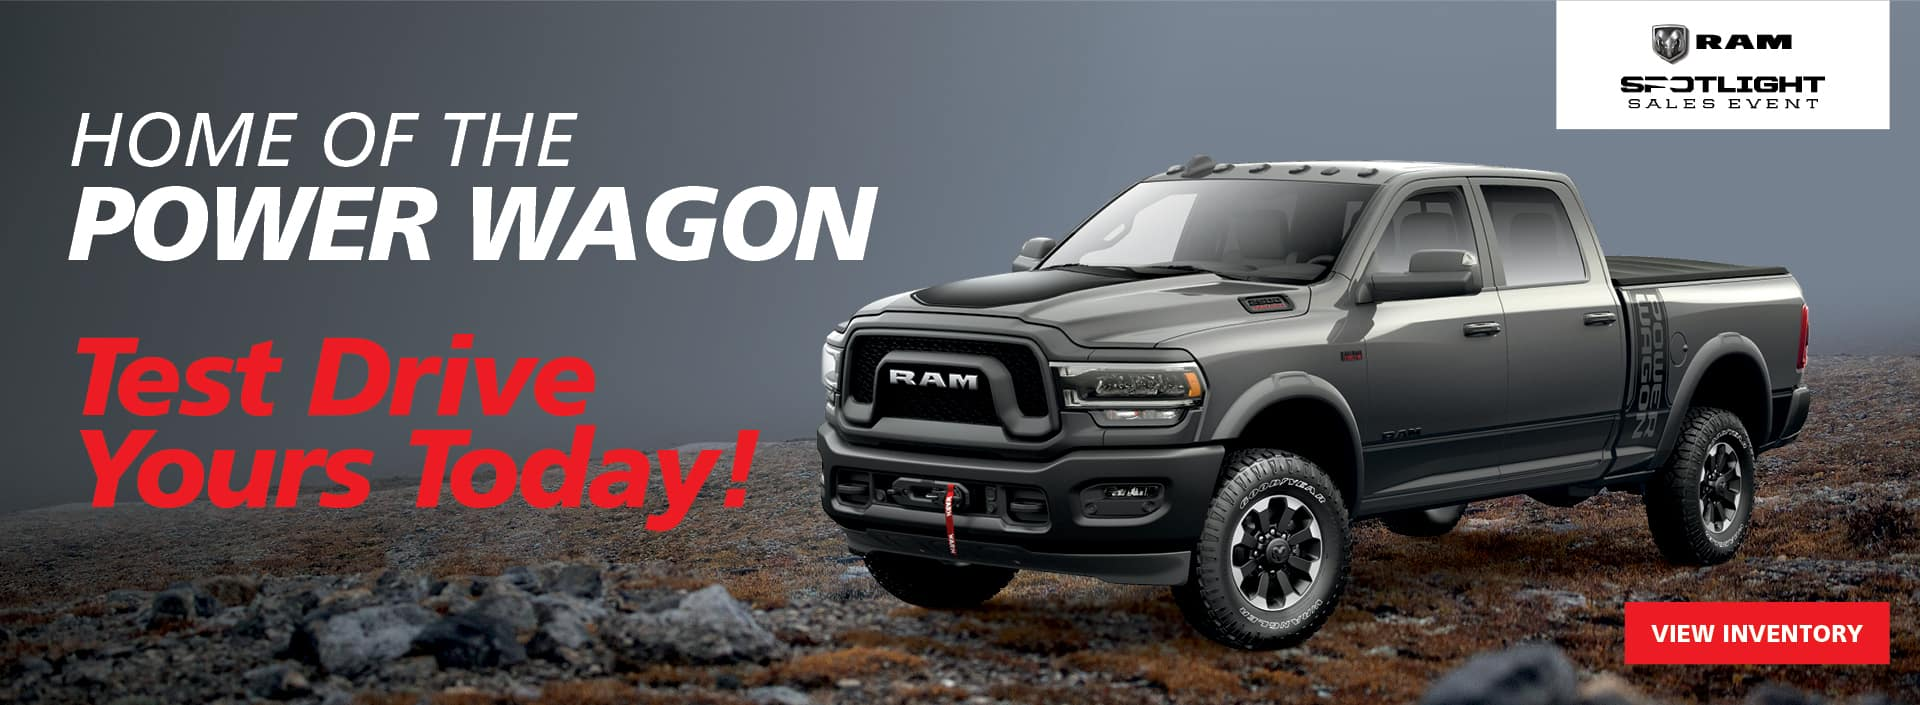 PRES-11060 WEB BANNER HOME OF THE POWER WAGON 1920×705